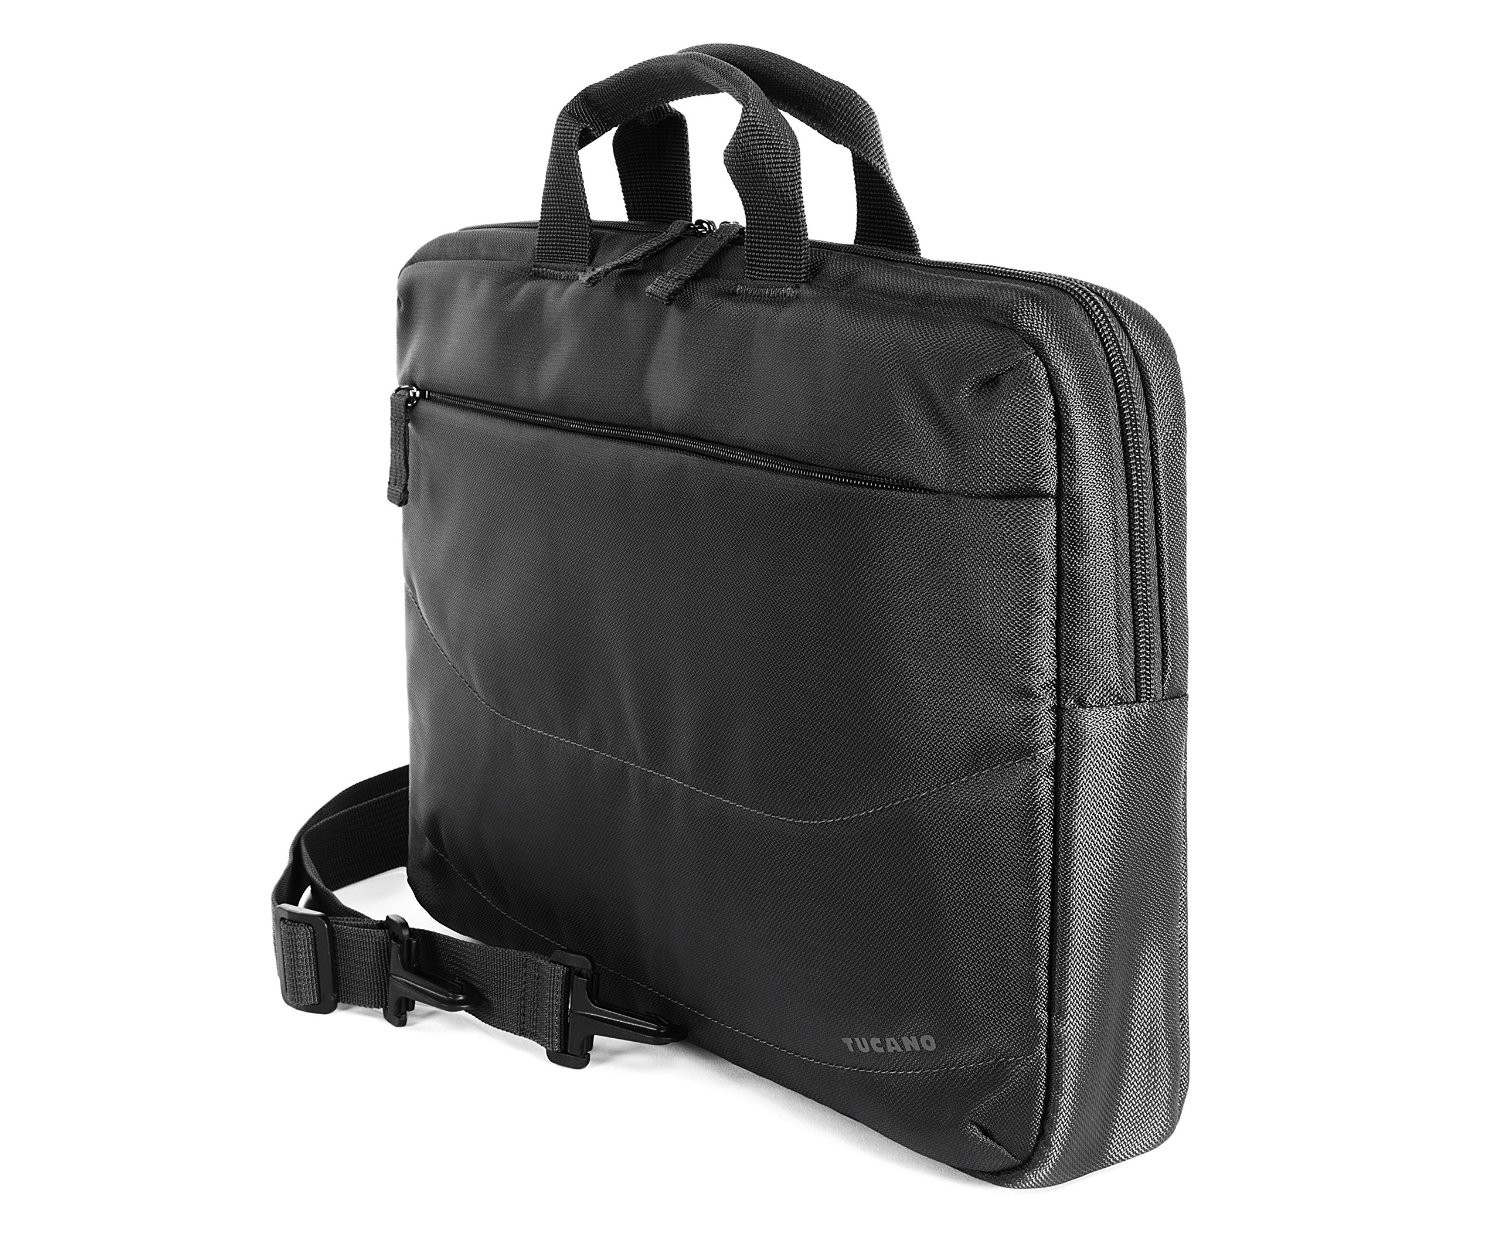 BORSA TUCANO IDEA SLIM BAG PER NOTEBOOK 15.6'' B-IDEA NERO